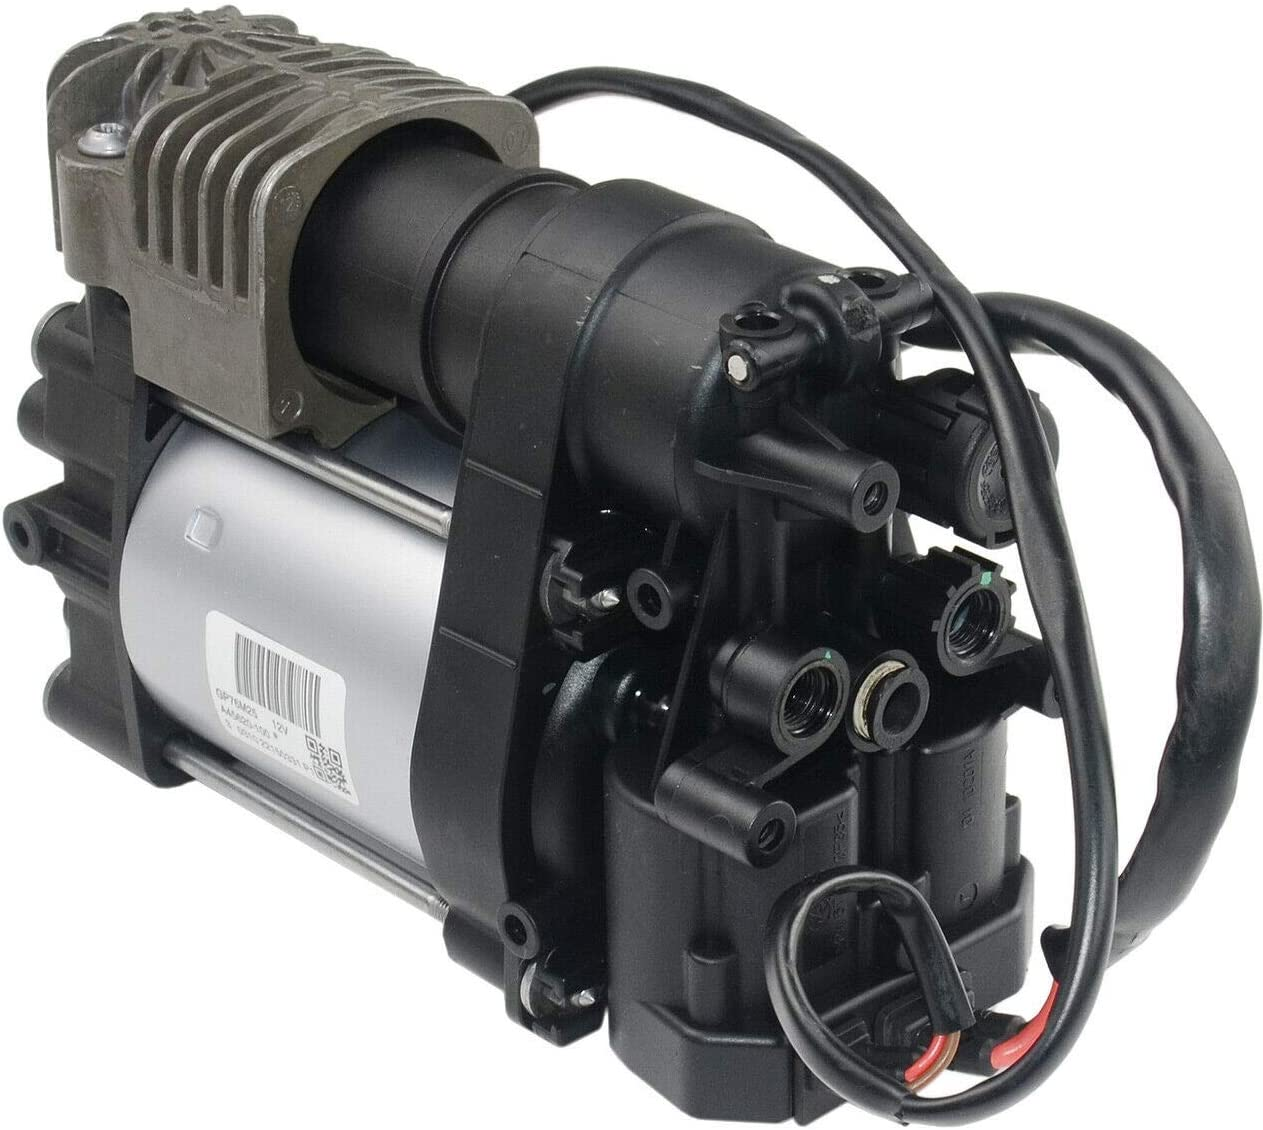 MSQ-CD Air Suspension Compressor Pump 95835890101 for Porsche Cayenne II 92A 2011-15 95835890100 95835890102